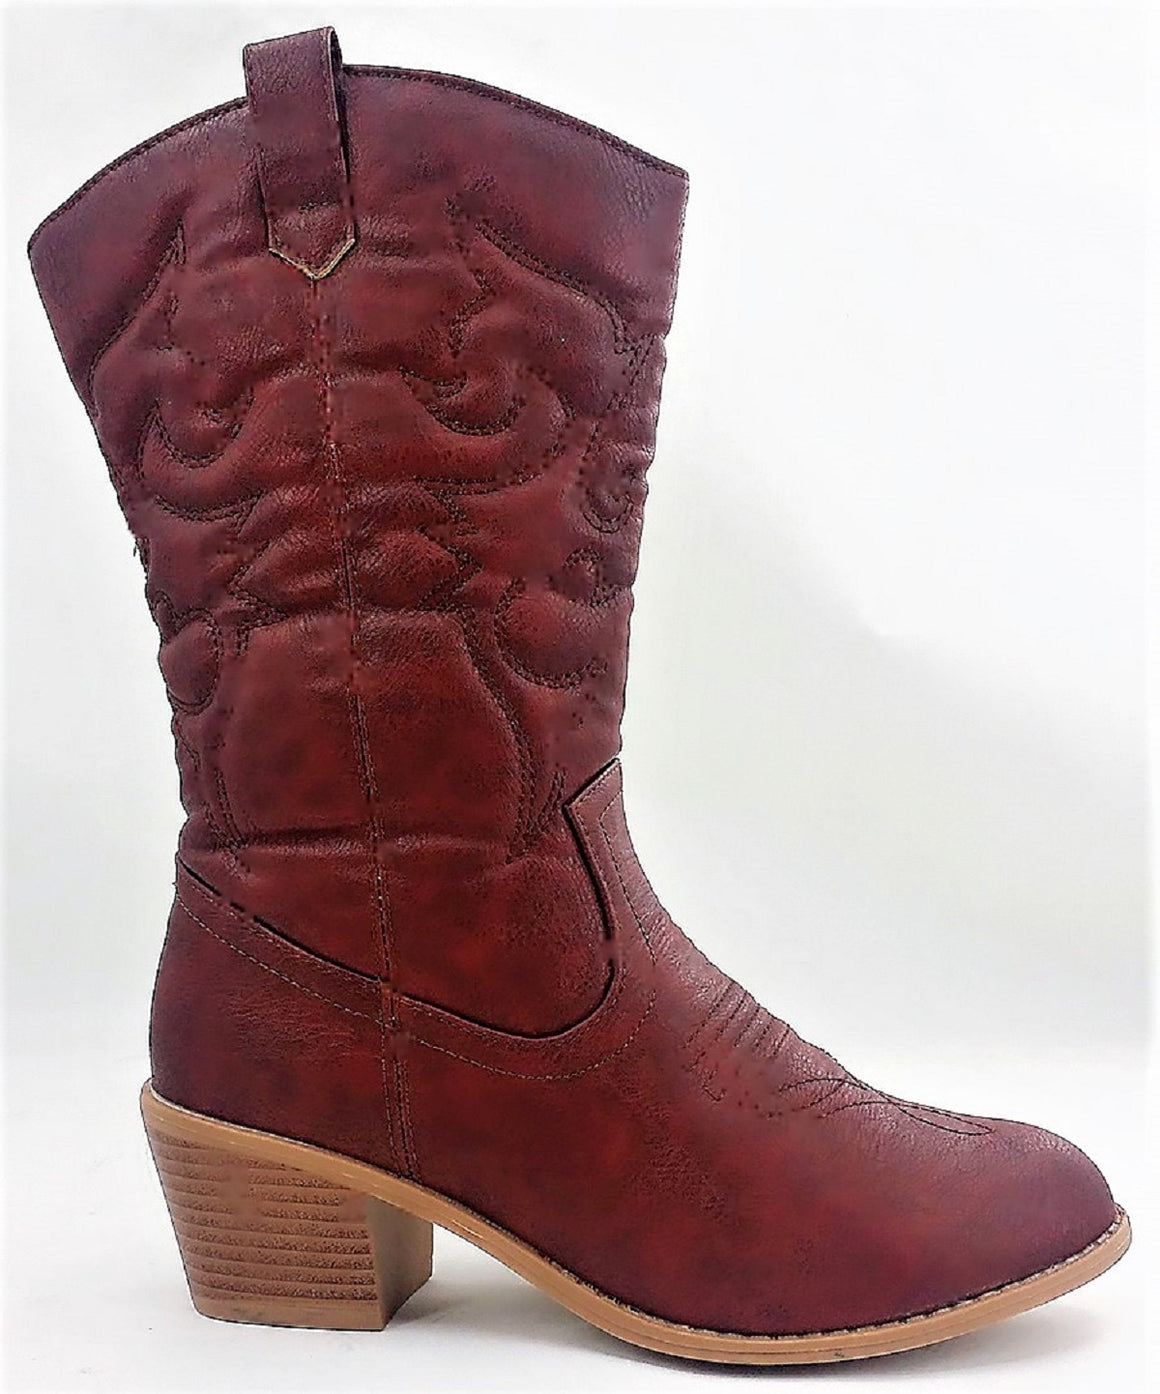 BDW-14W Western Cowboy Cowgirl Mid Calf Pointed Toe Stitched Boots Wine